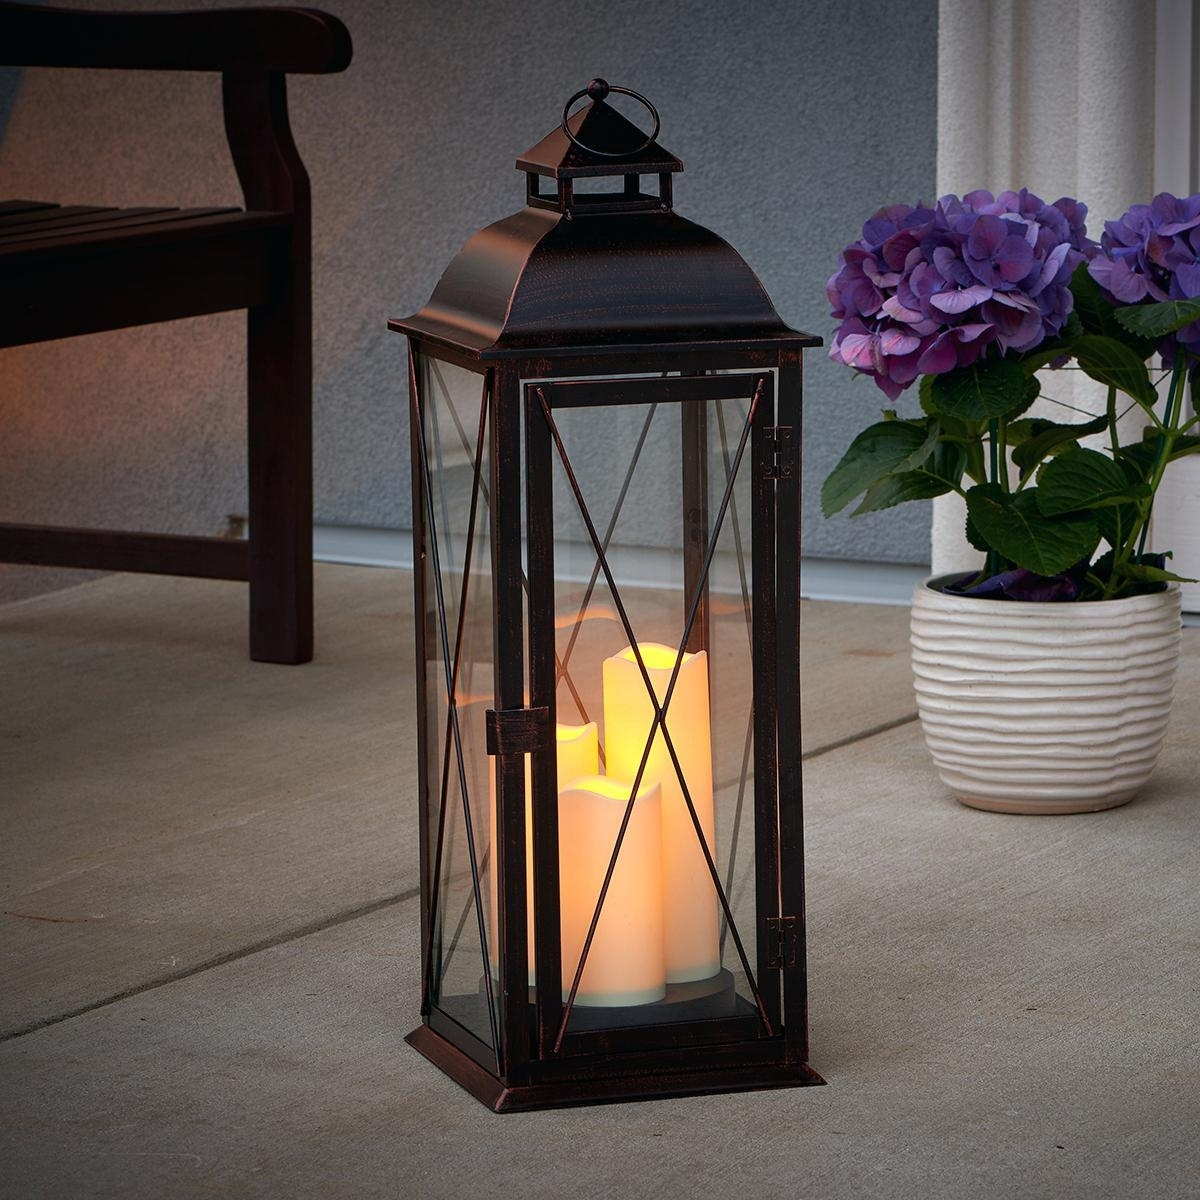 Outdoor Lanterns With Flameless Candles Pertaining To Most Recently Released Candles ~ Flameless Candle Lanterns Lantern For Block Black Indoor (View 12 of 20)